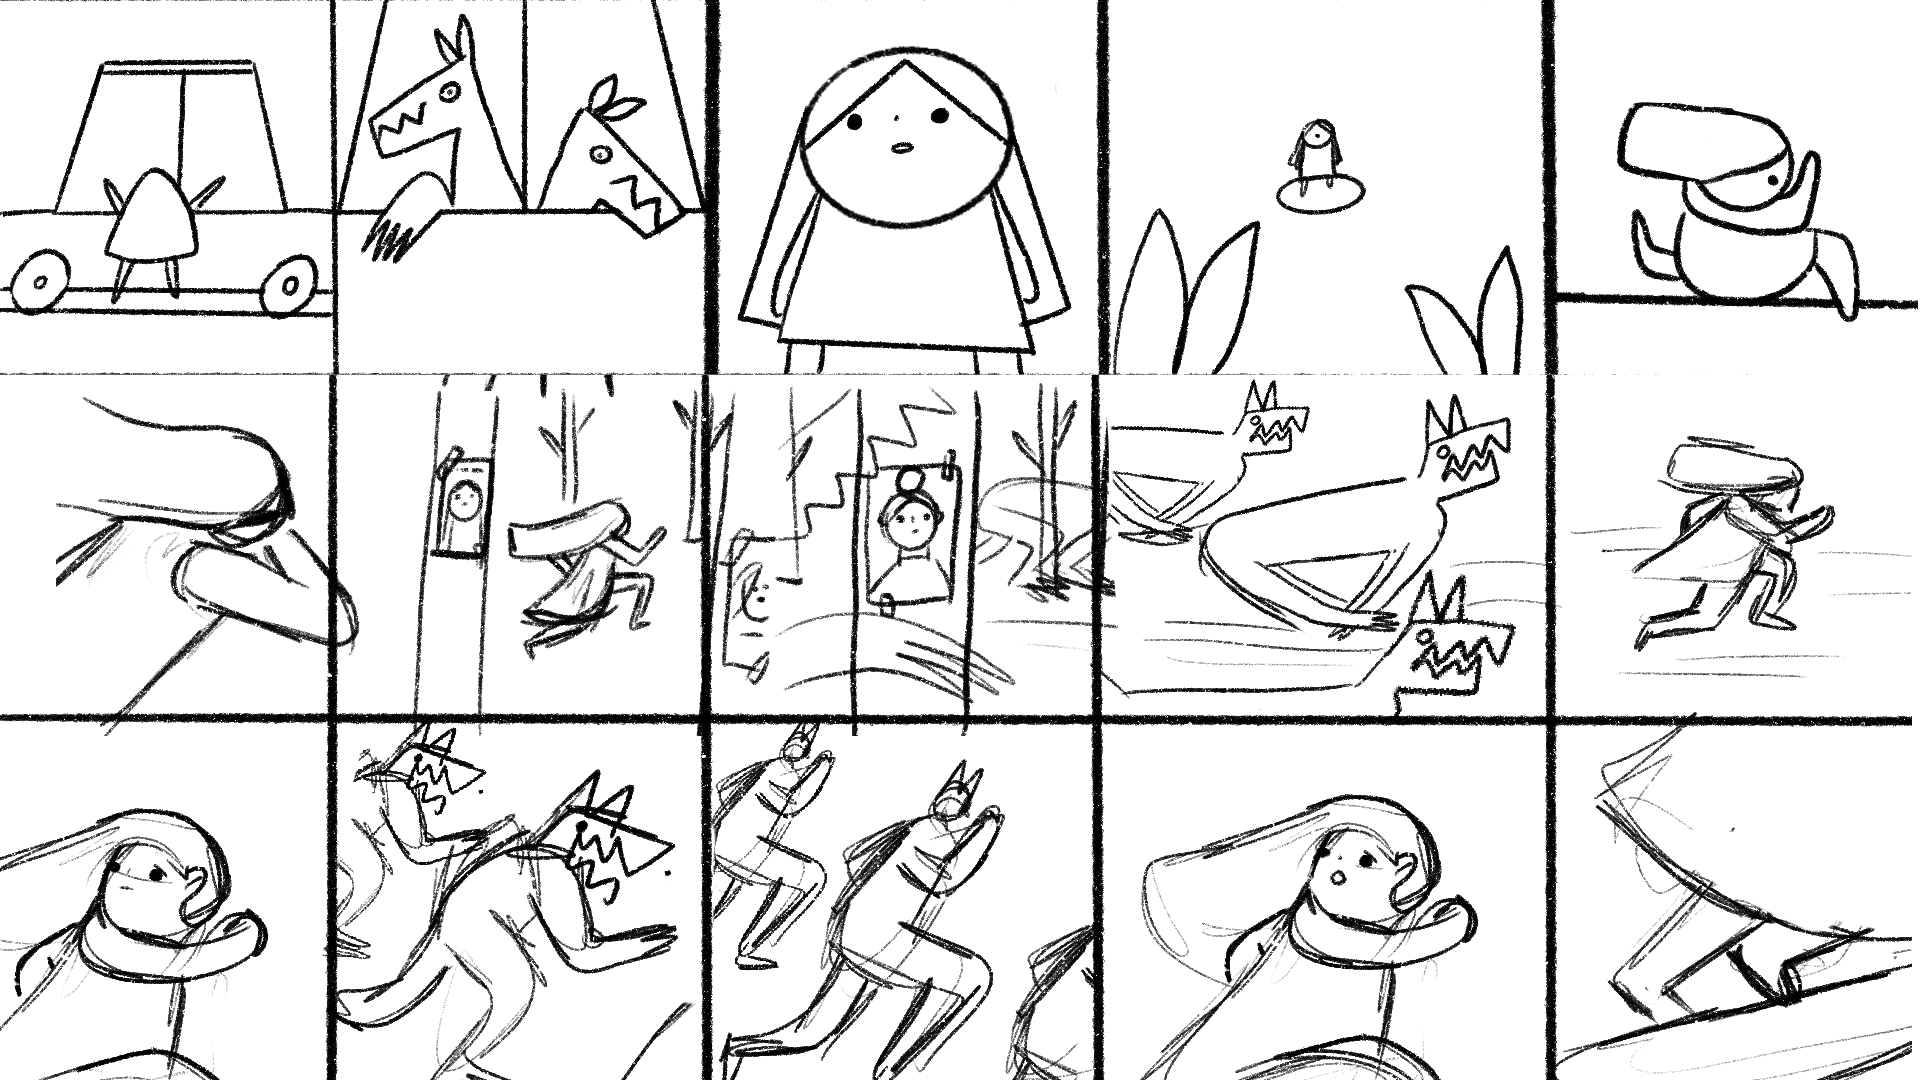 Scenes from Storyboard